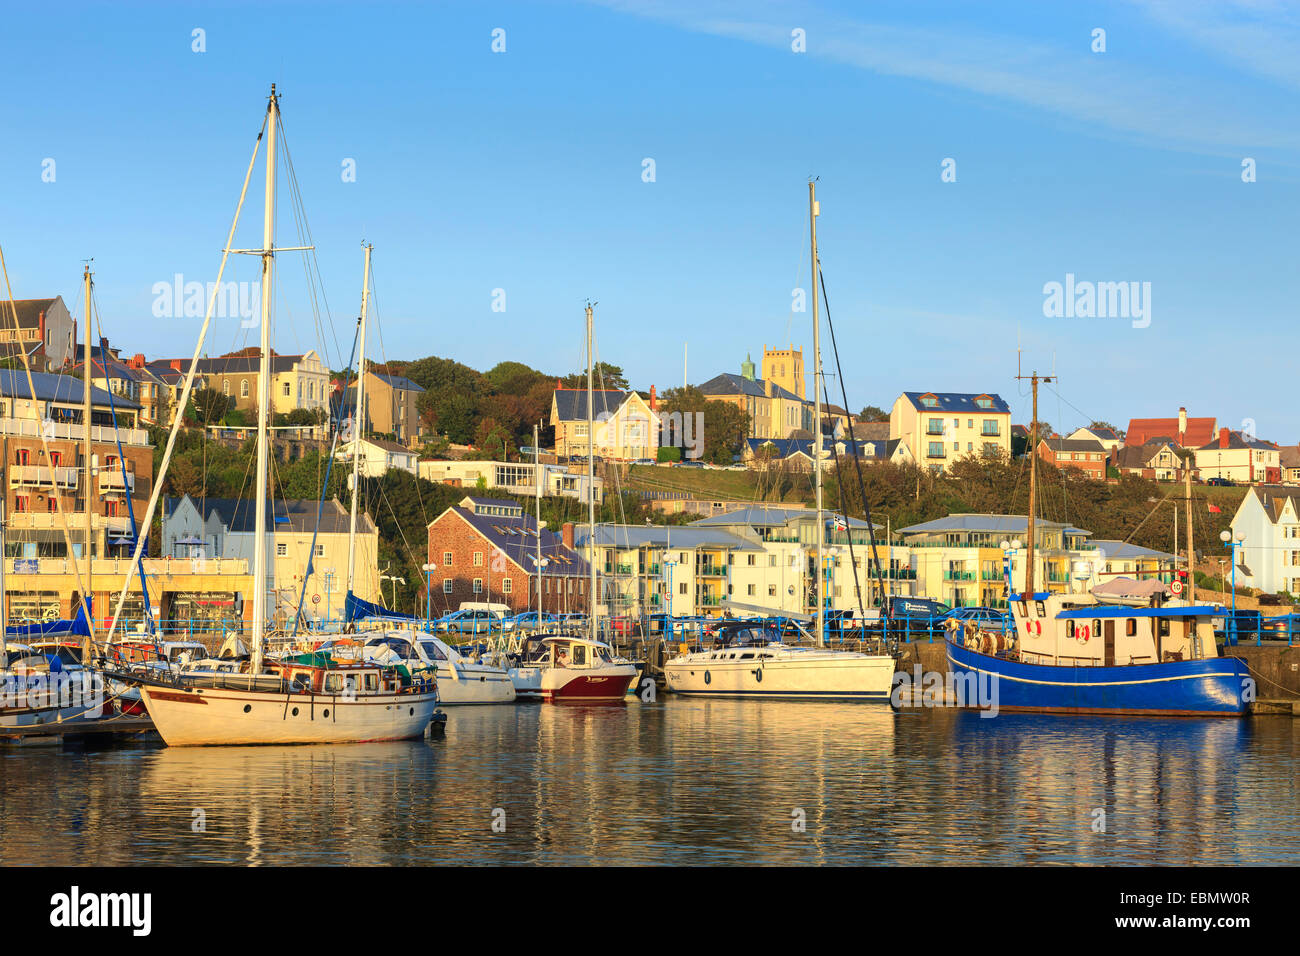 Milford Haven Pembrokeshire Wales - Stock Image